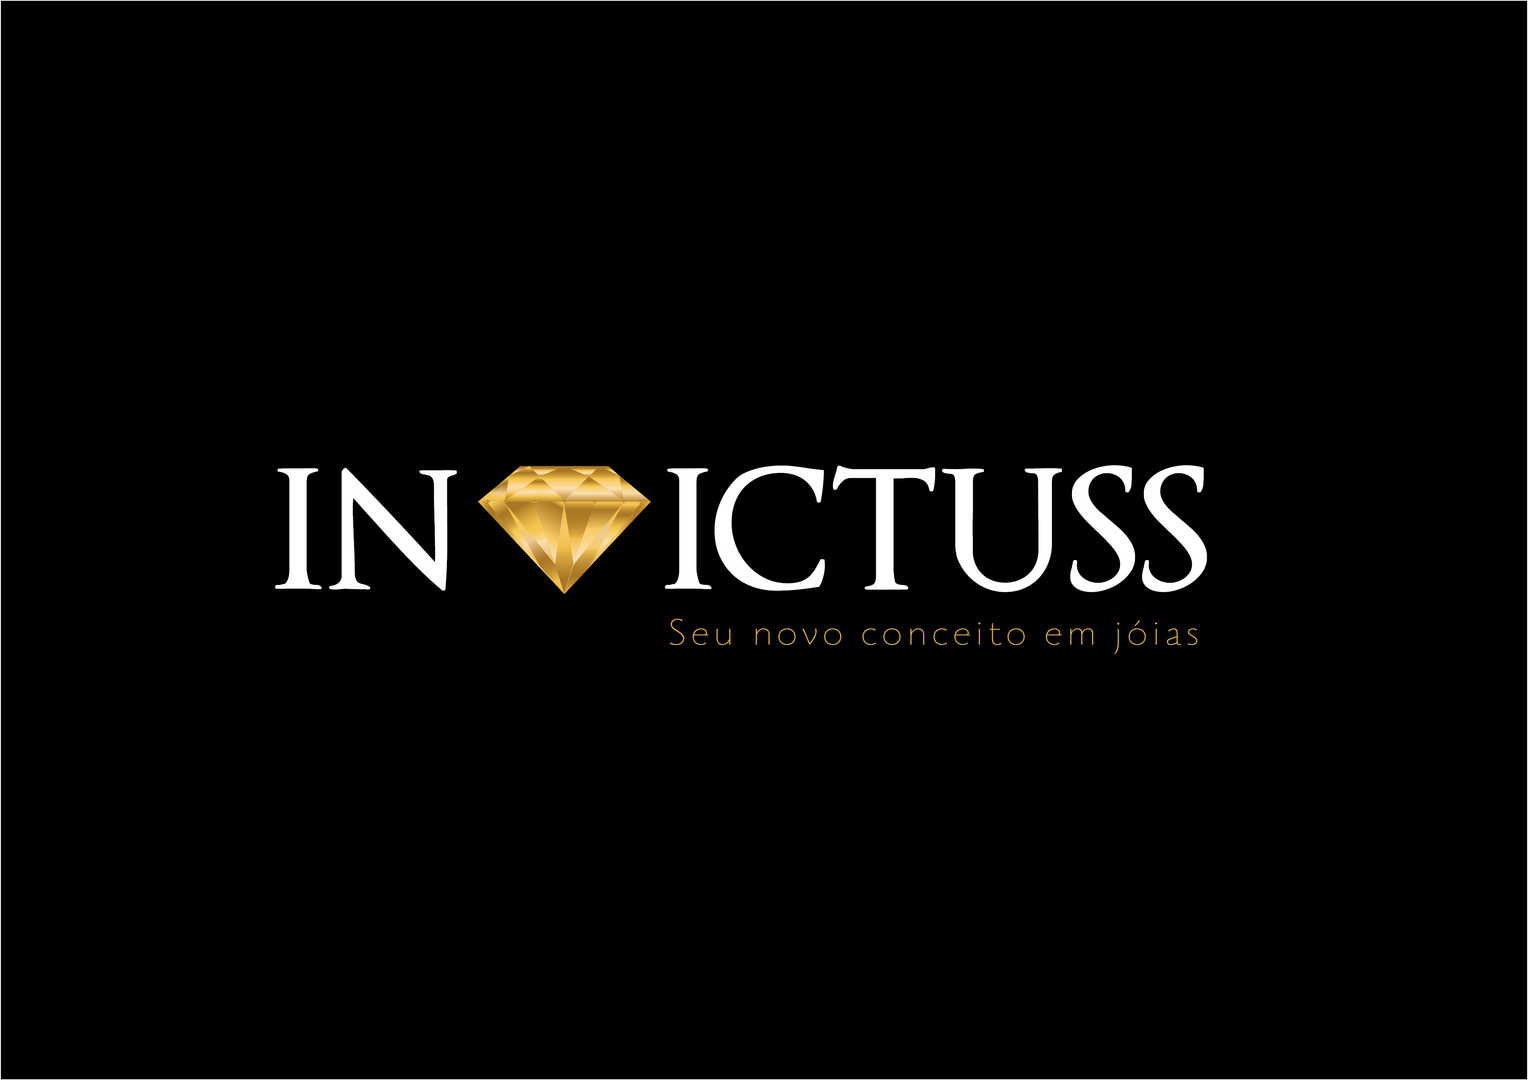 INVICTUSS + slogan.jpg